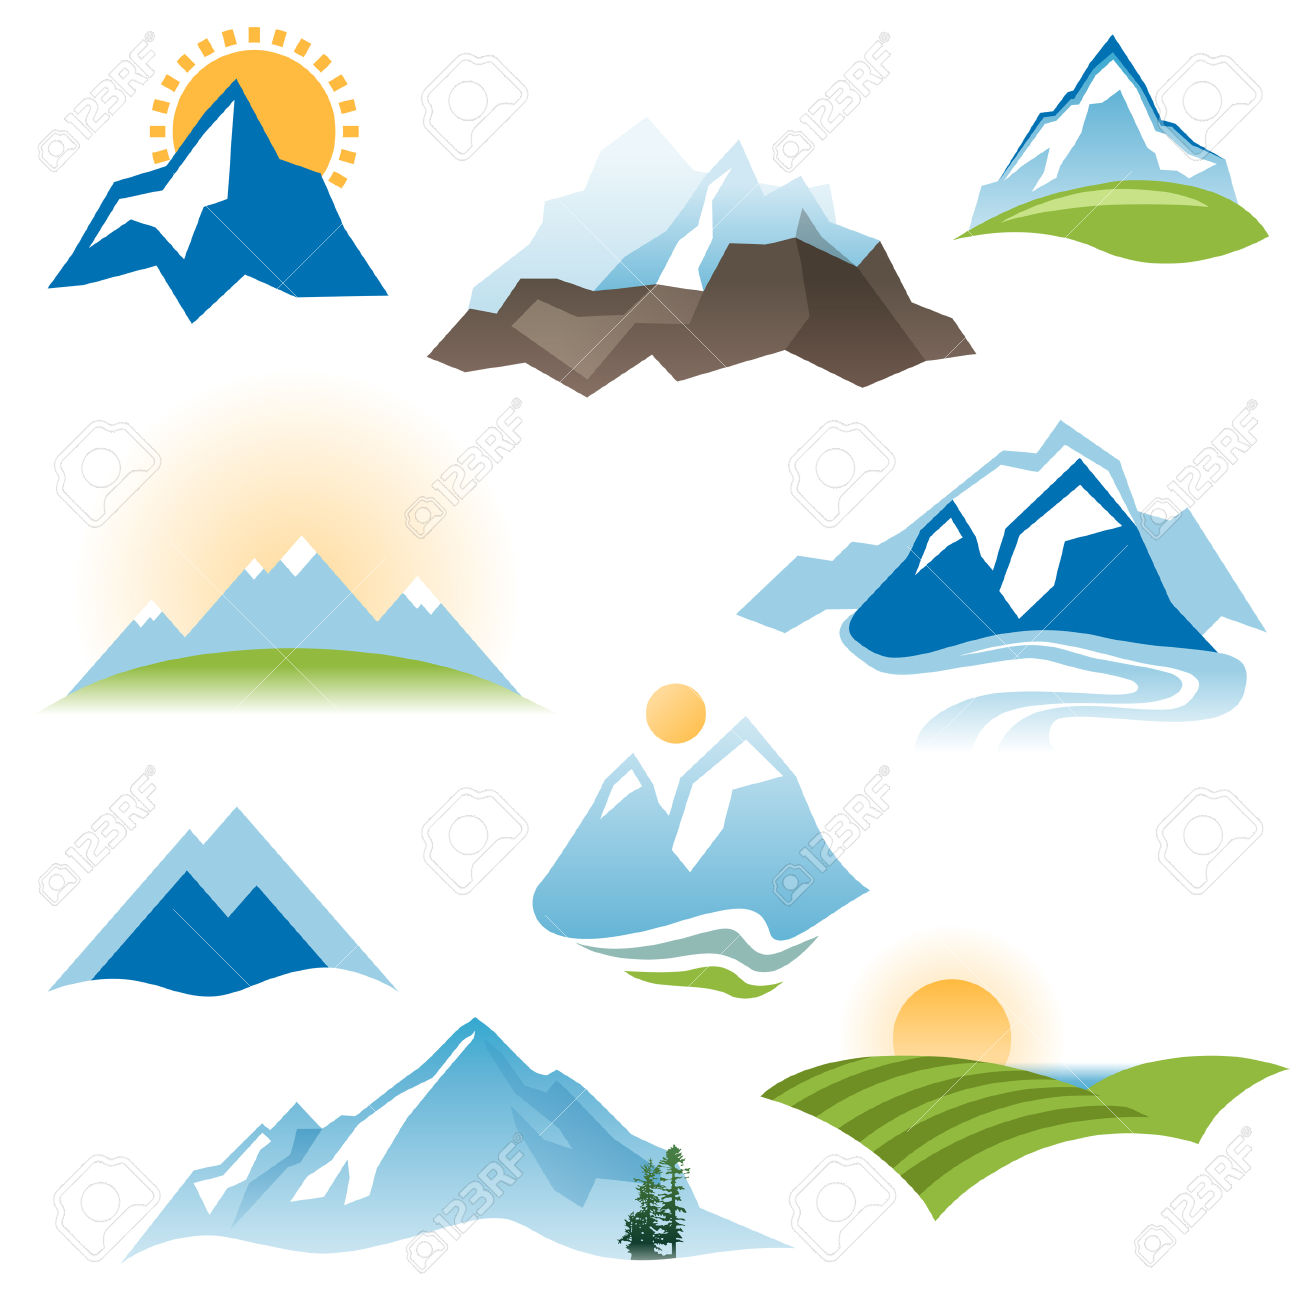 Free download best on. Mountain clipart mountain valley